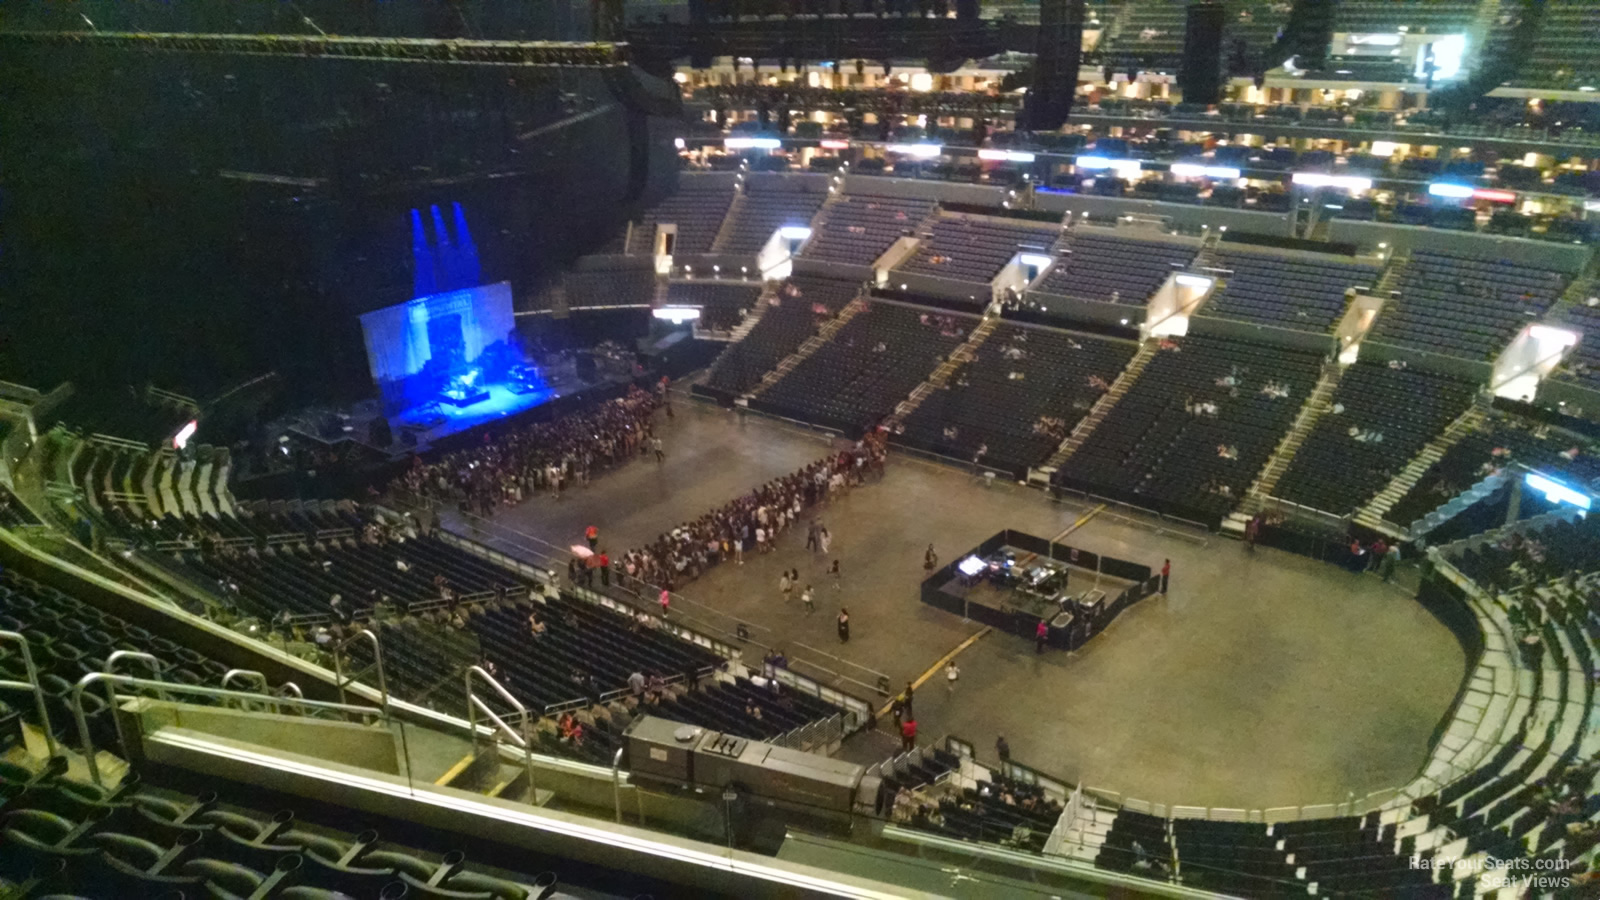 Staples Center Section 315 Concert Seating - RateYourSeats.com